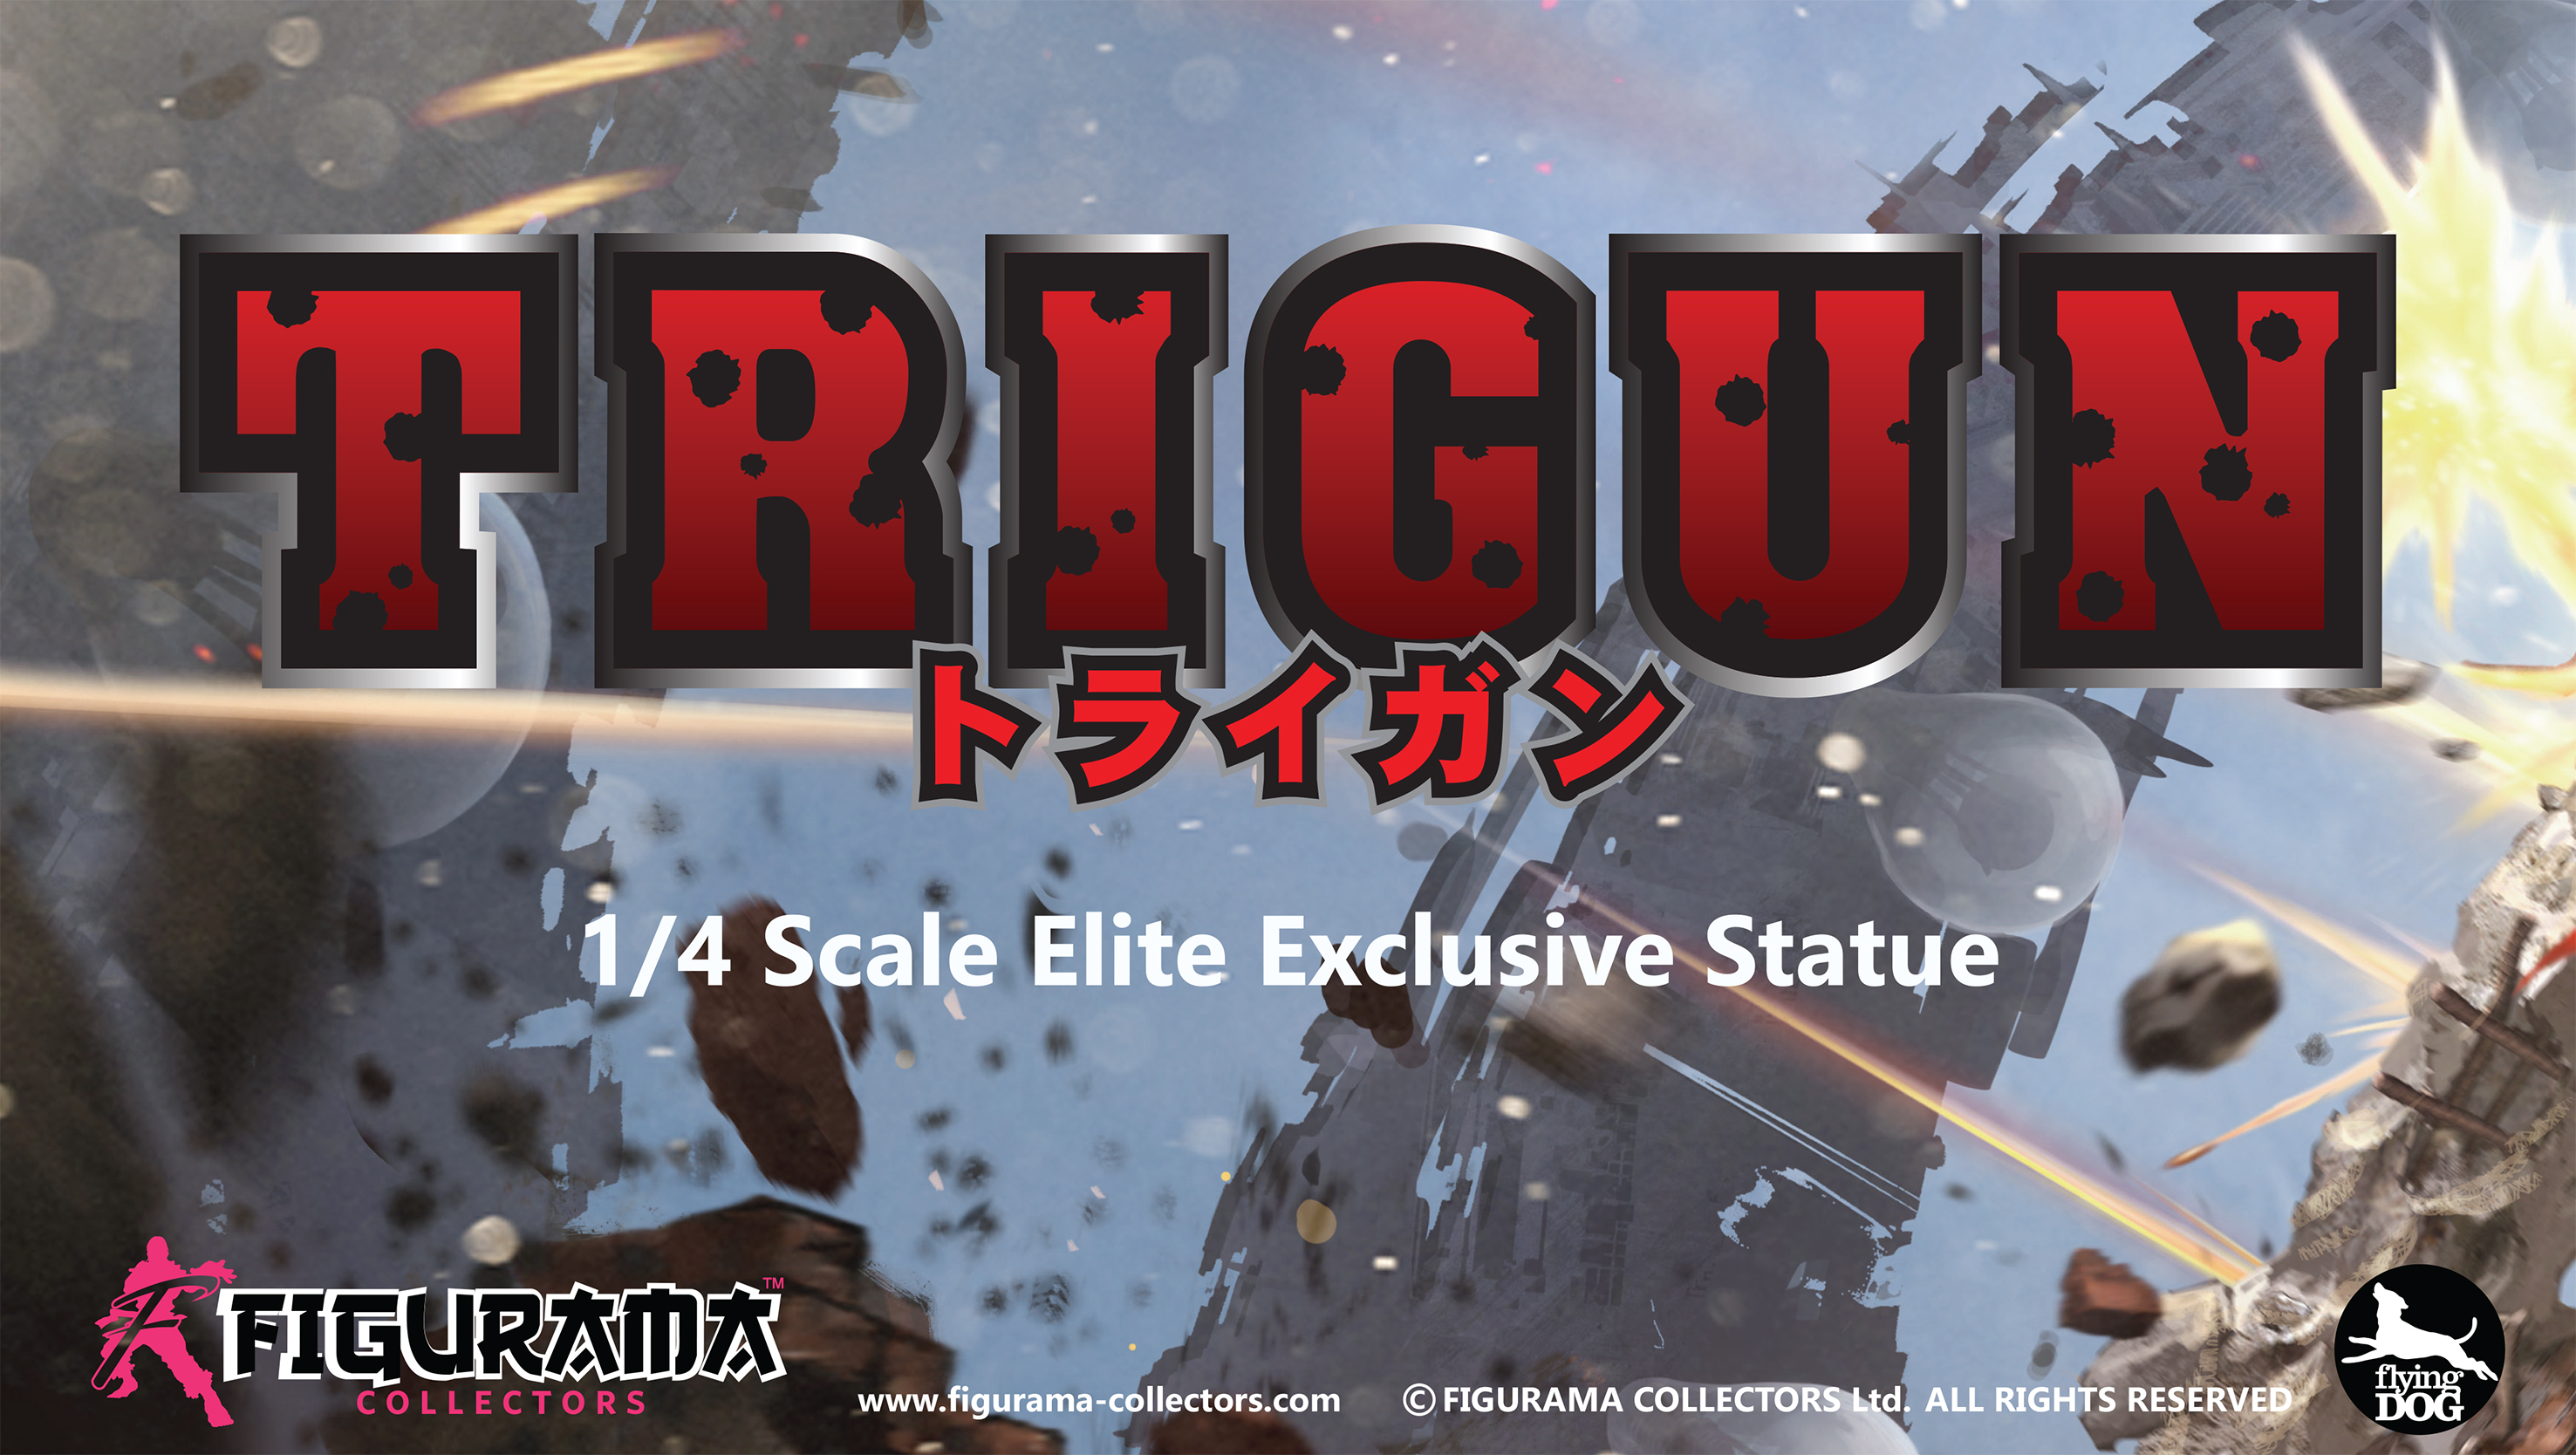 Figurama Collectors annuncia Vash the Stampede da Trigun!